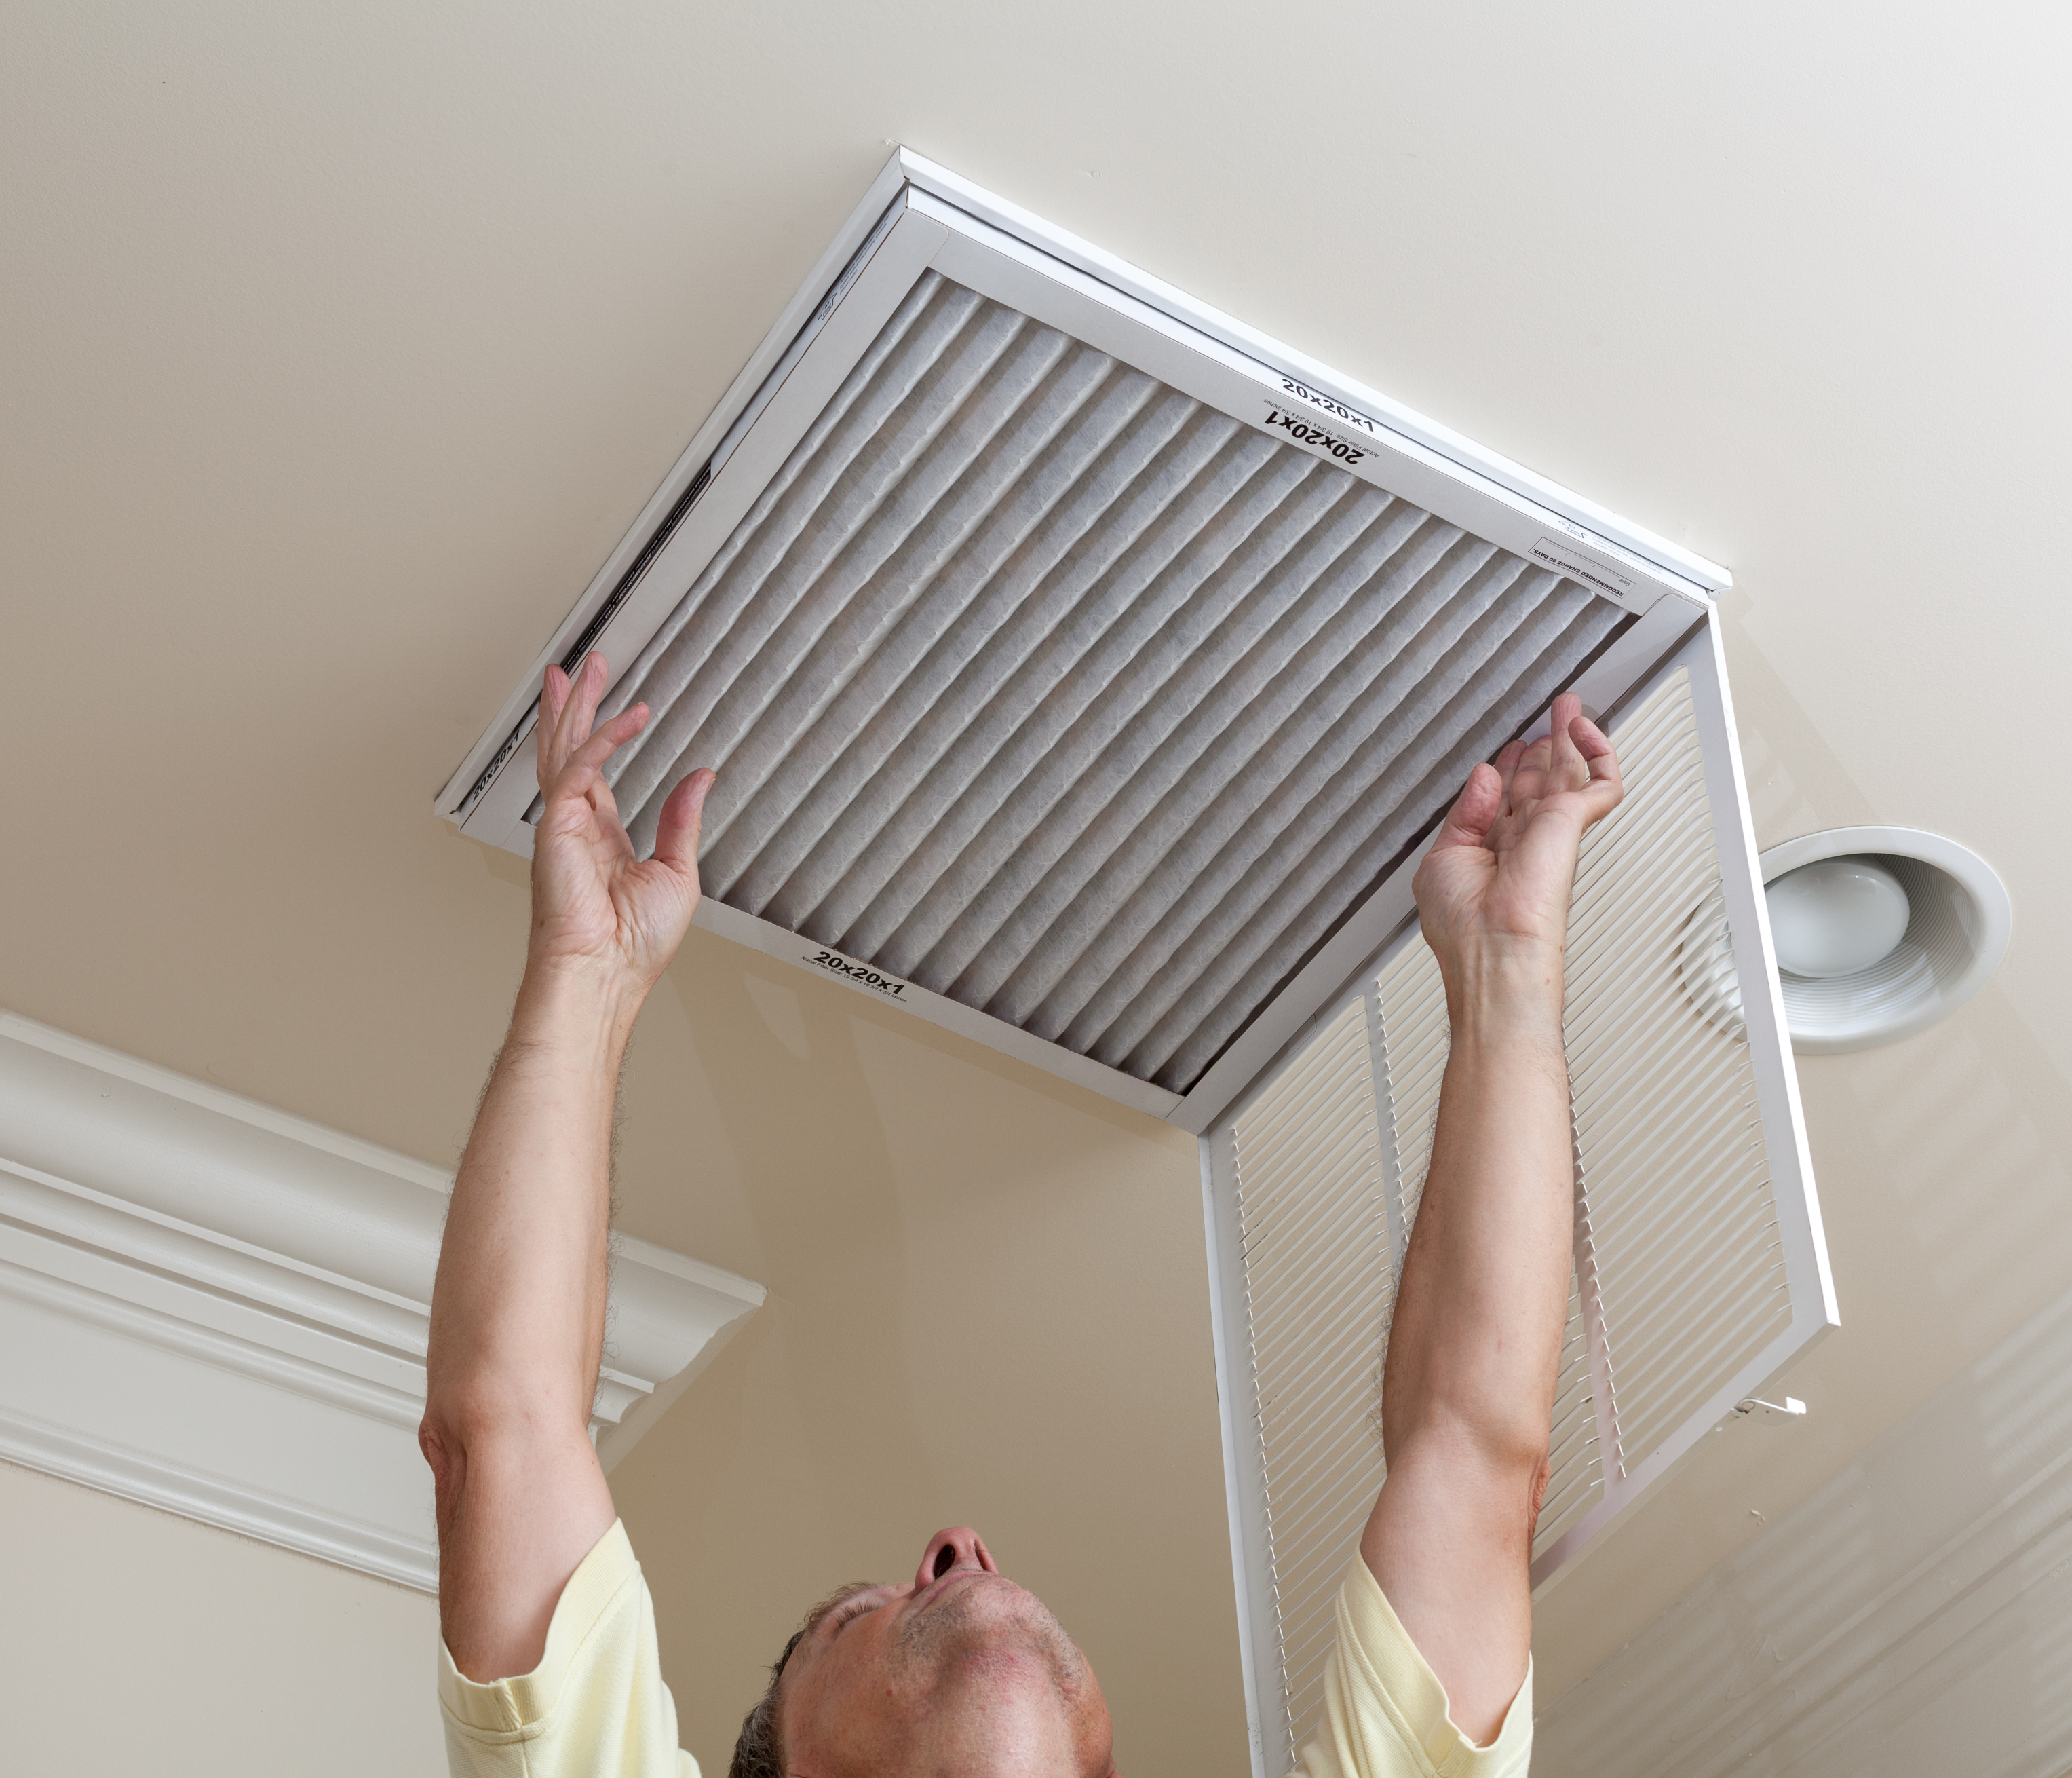 Maintenance of ceiling air conditioners 18